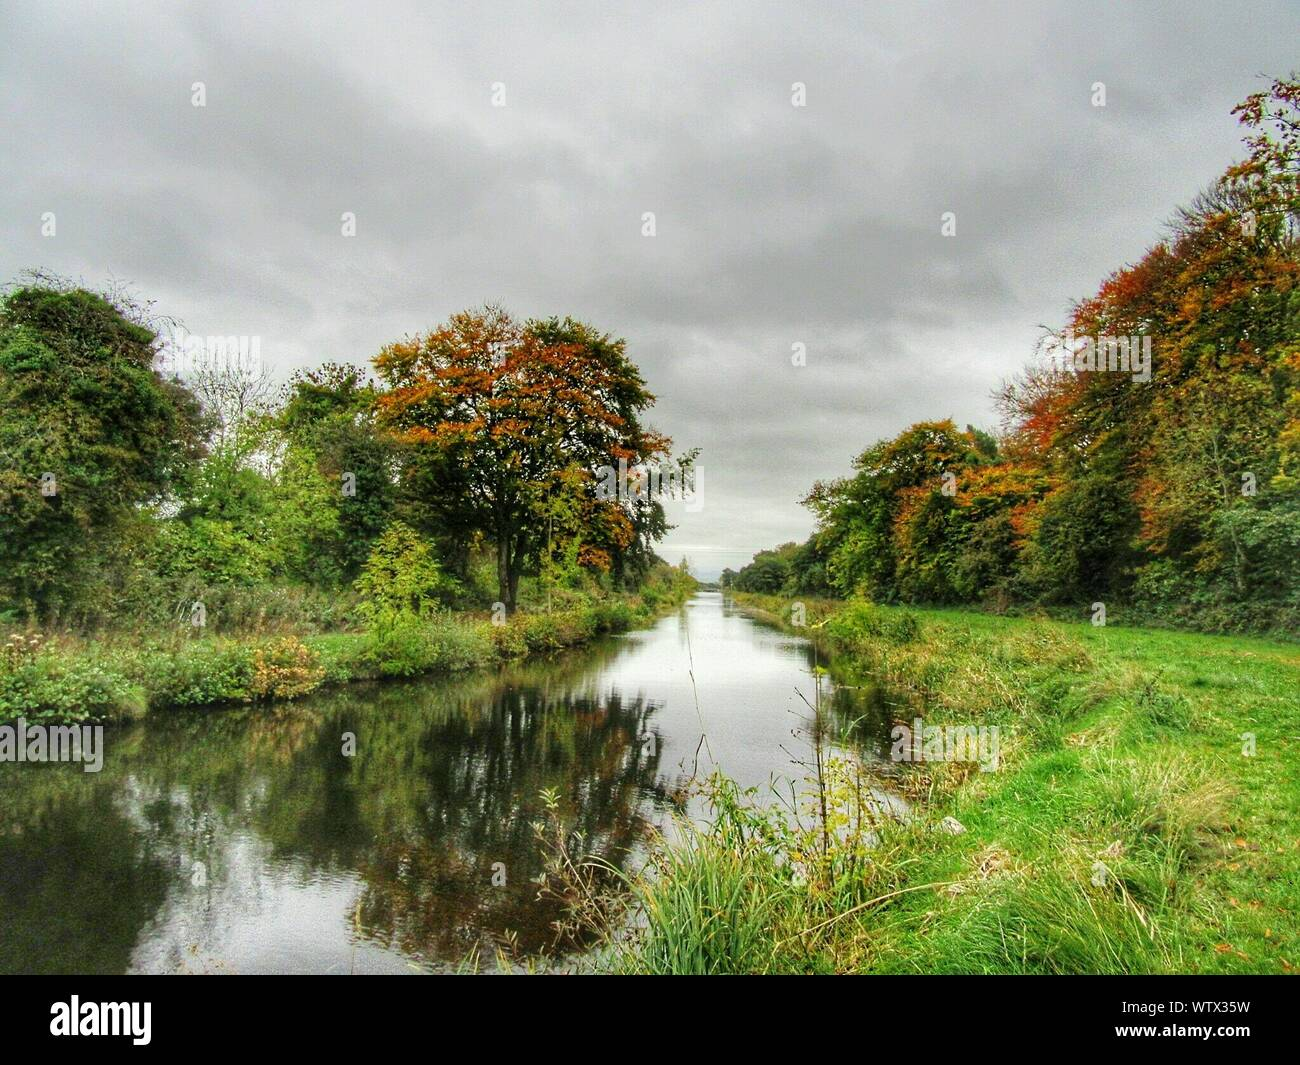 River Flowing Through Green Landscape And Trees Stock Photo